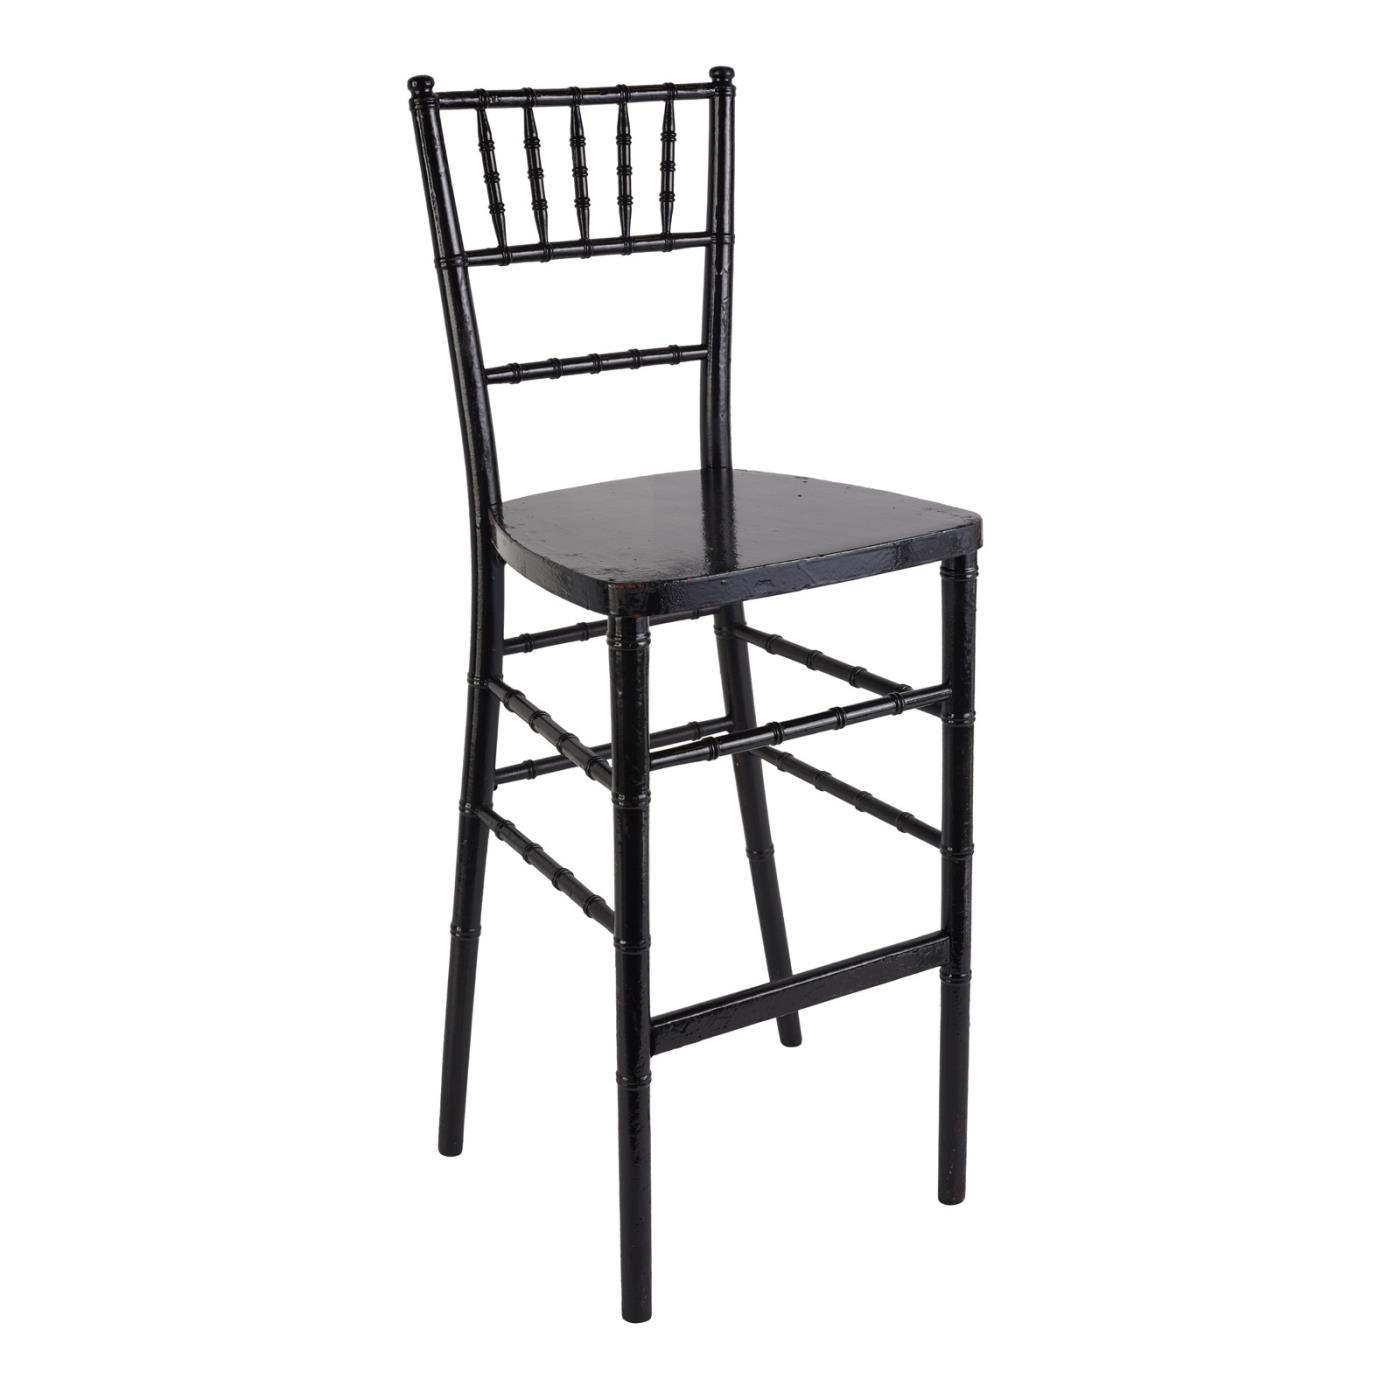 Reception Stool - Black